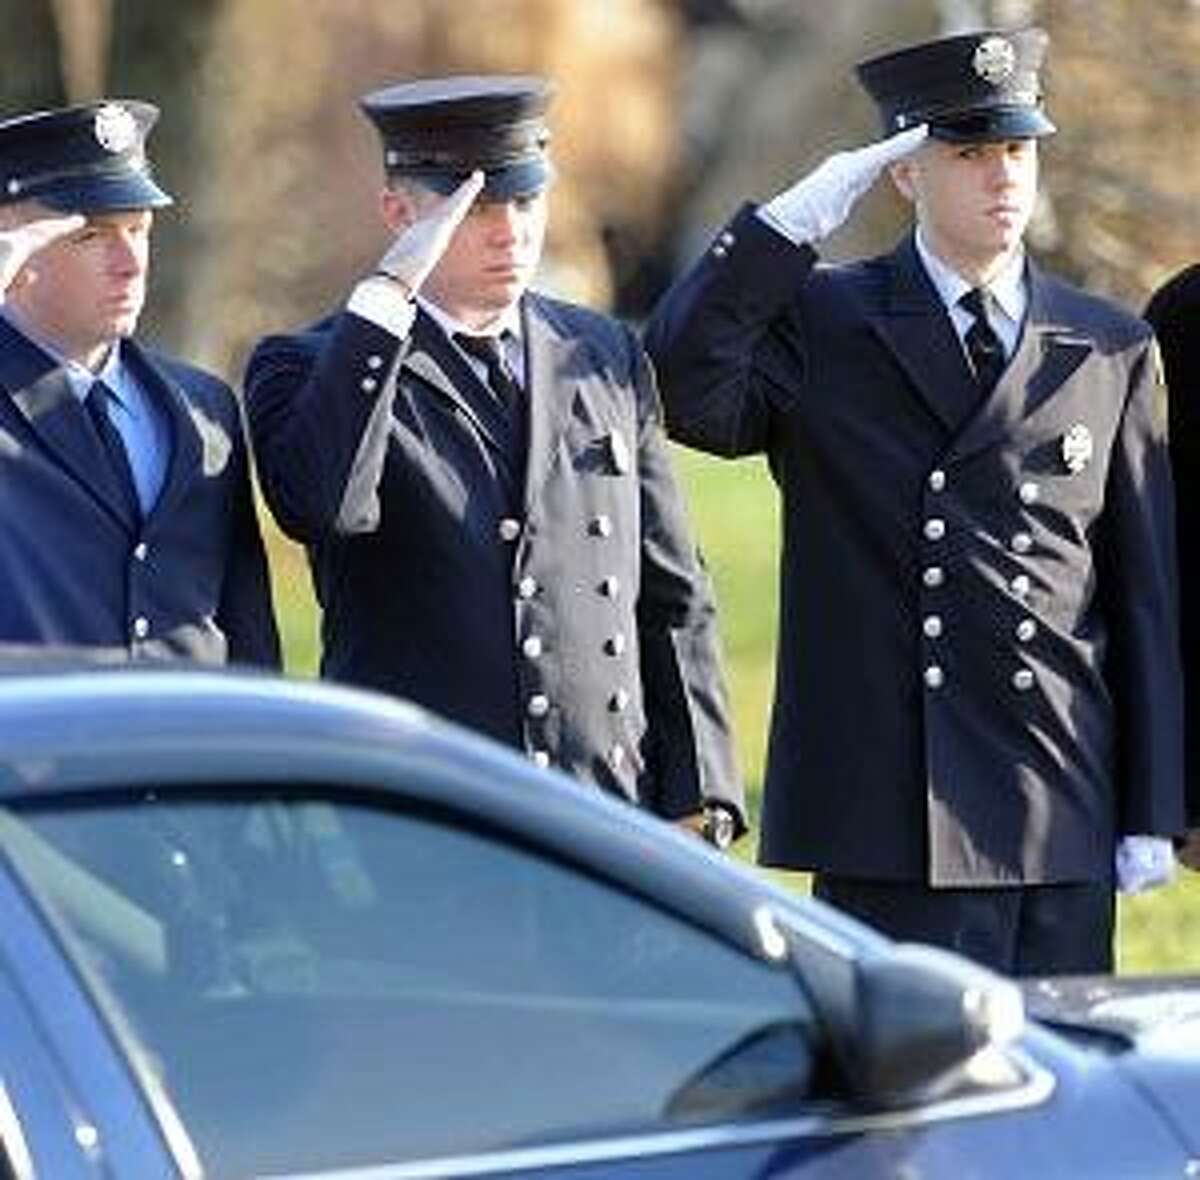 Connecticut firefighters from around the state stand as an honor guard during the funeral for Daniel Barden , 7, of at the St. Rose of Lima Roman Catholic Church in Newton, Conn. Wednesday, December 19, 2012, who was killed by a gunman that also claimed the lives of 6 adults and 19 other children at the Sandy Hooky Elementary School shooting Friday, December 14, 2012. Photo by Peter Hvizdak / New Haven Register